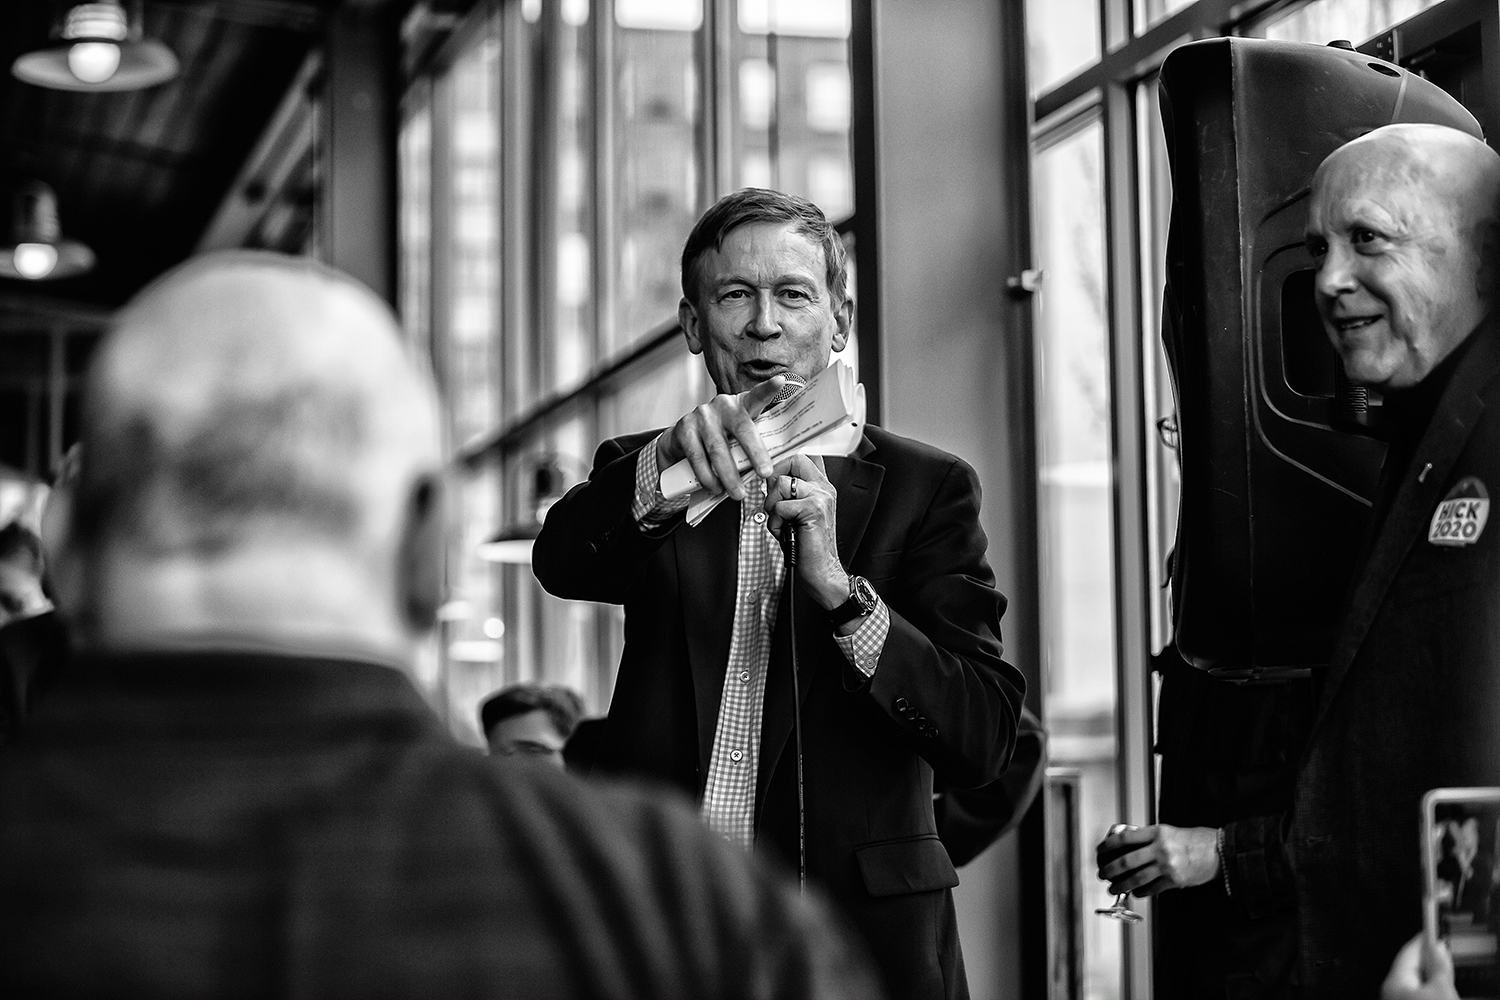 Former+Colorado+Gov.+John+Hickenlooper+calls+on+a+question+at+Backpocket+Brewery+in+Coralville+on+Friday%2C+April+12%2C+2019.